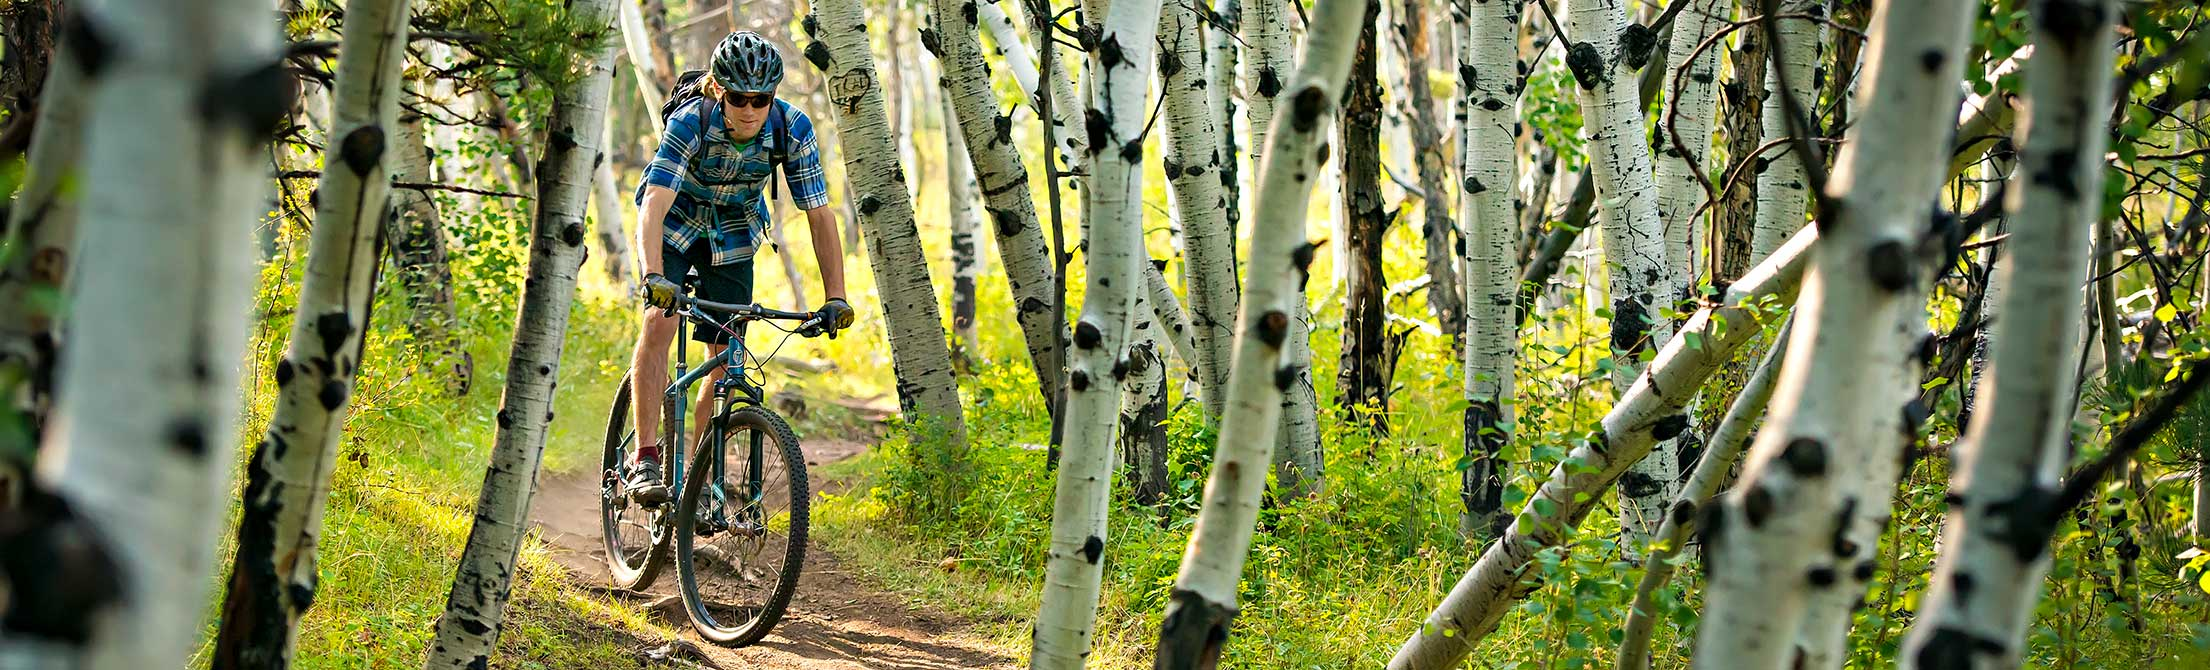 Image of mountain biker